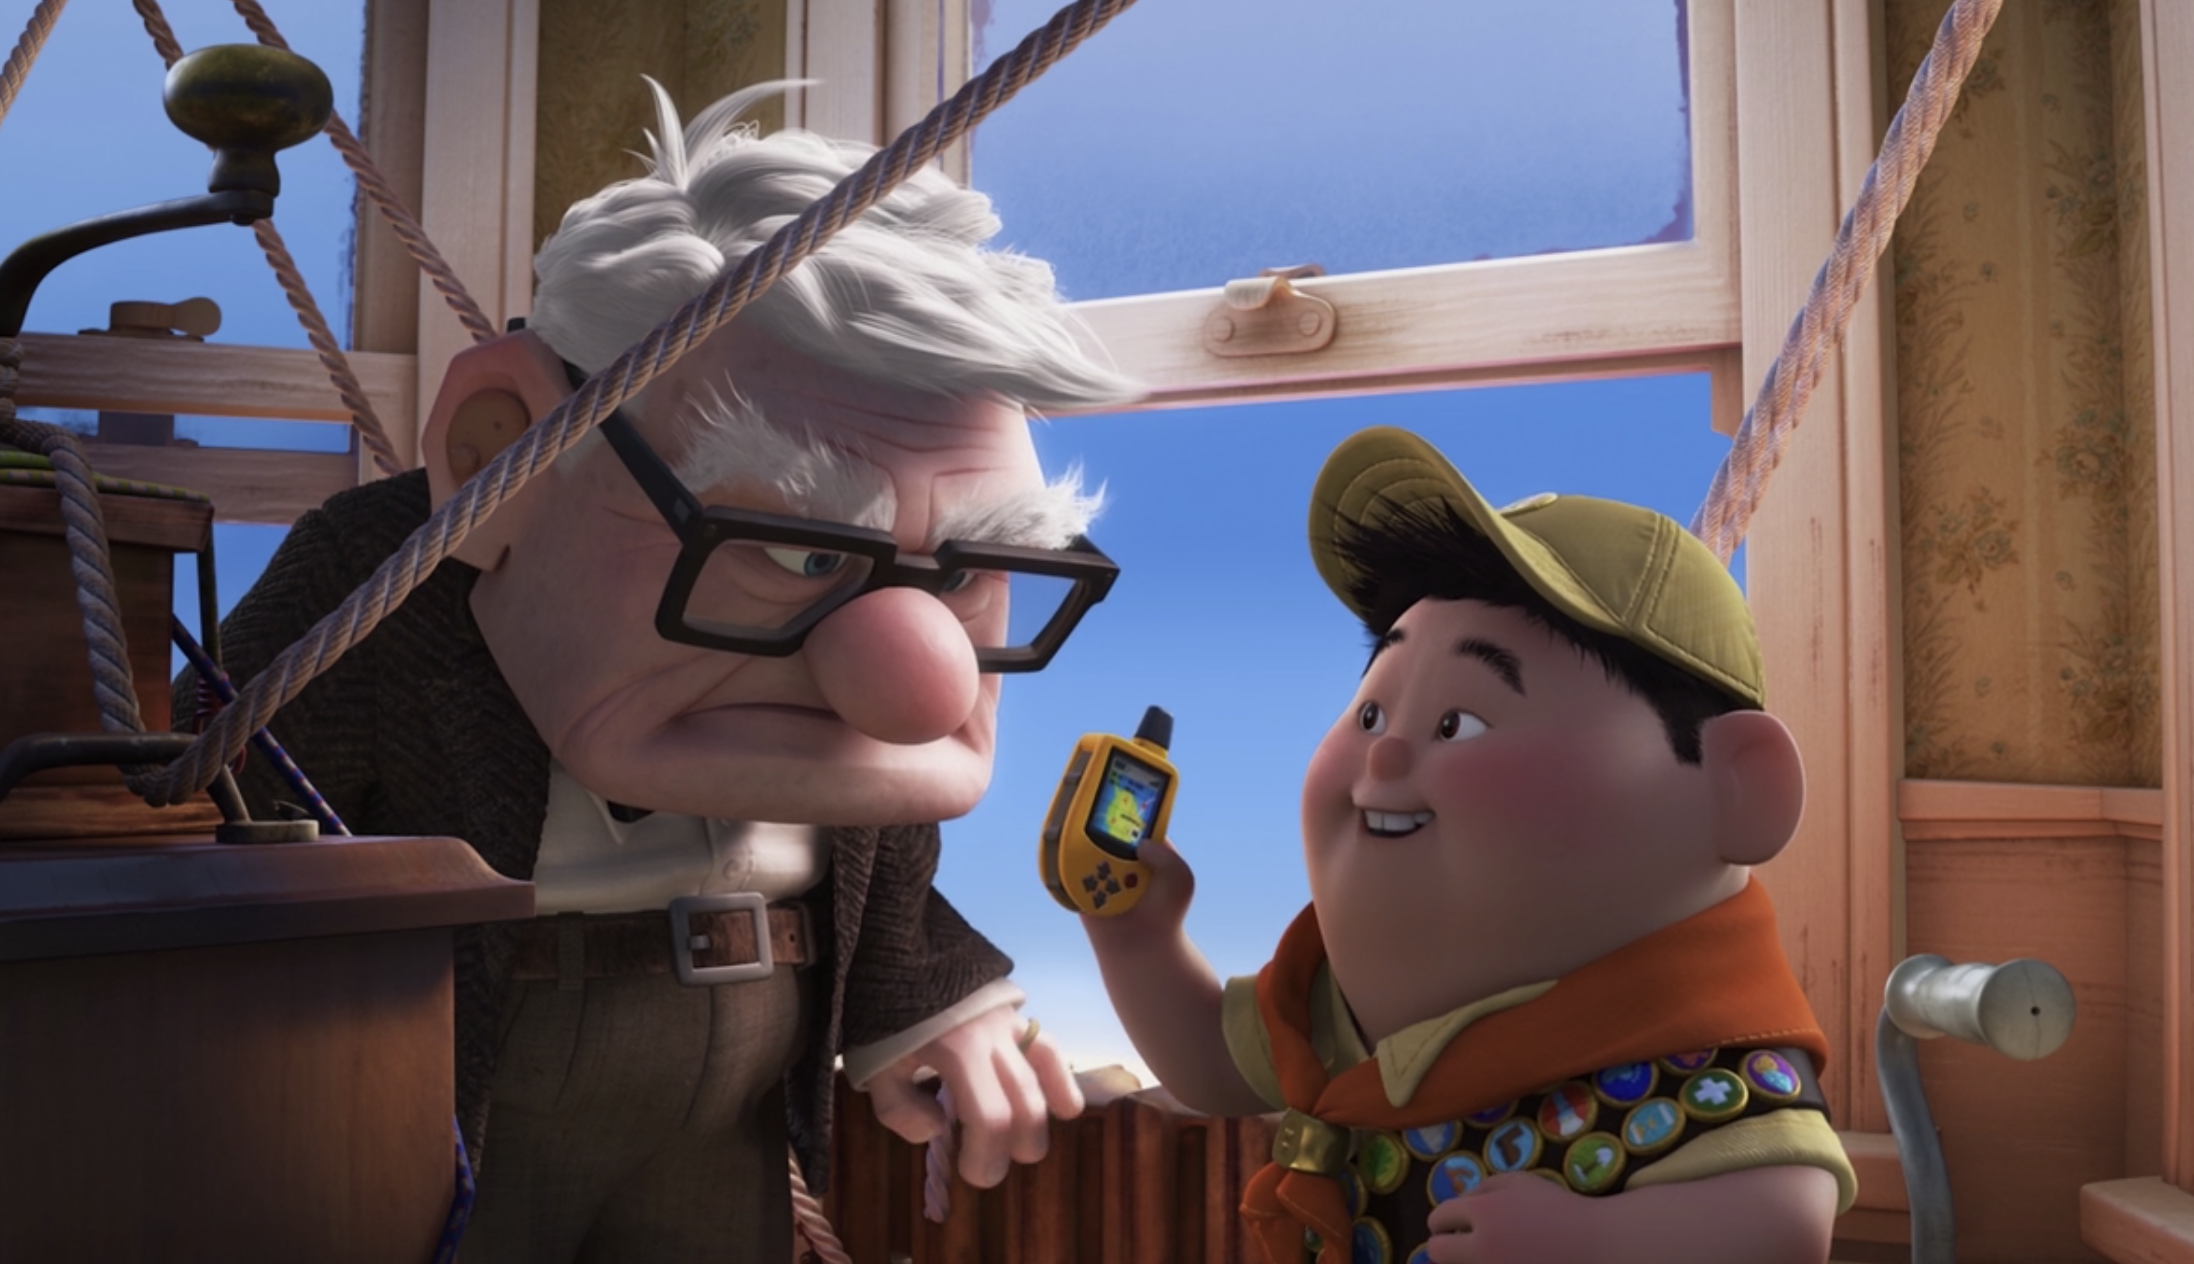 Russell holds up a walkie talkie and smiles while Carl looks down at him, angry